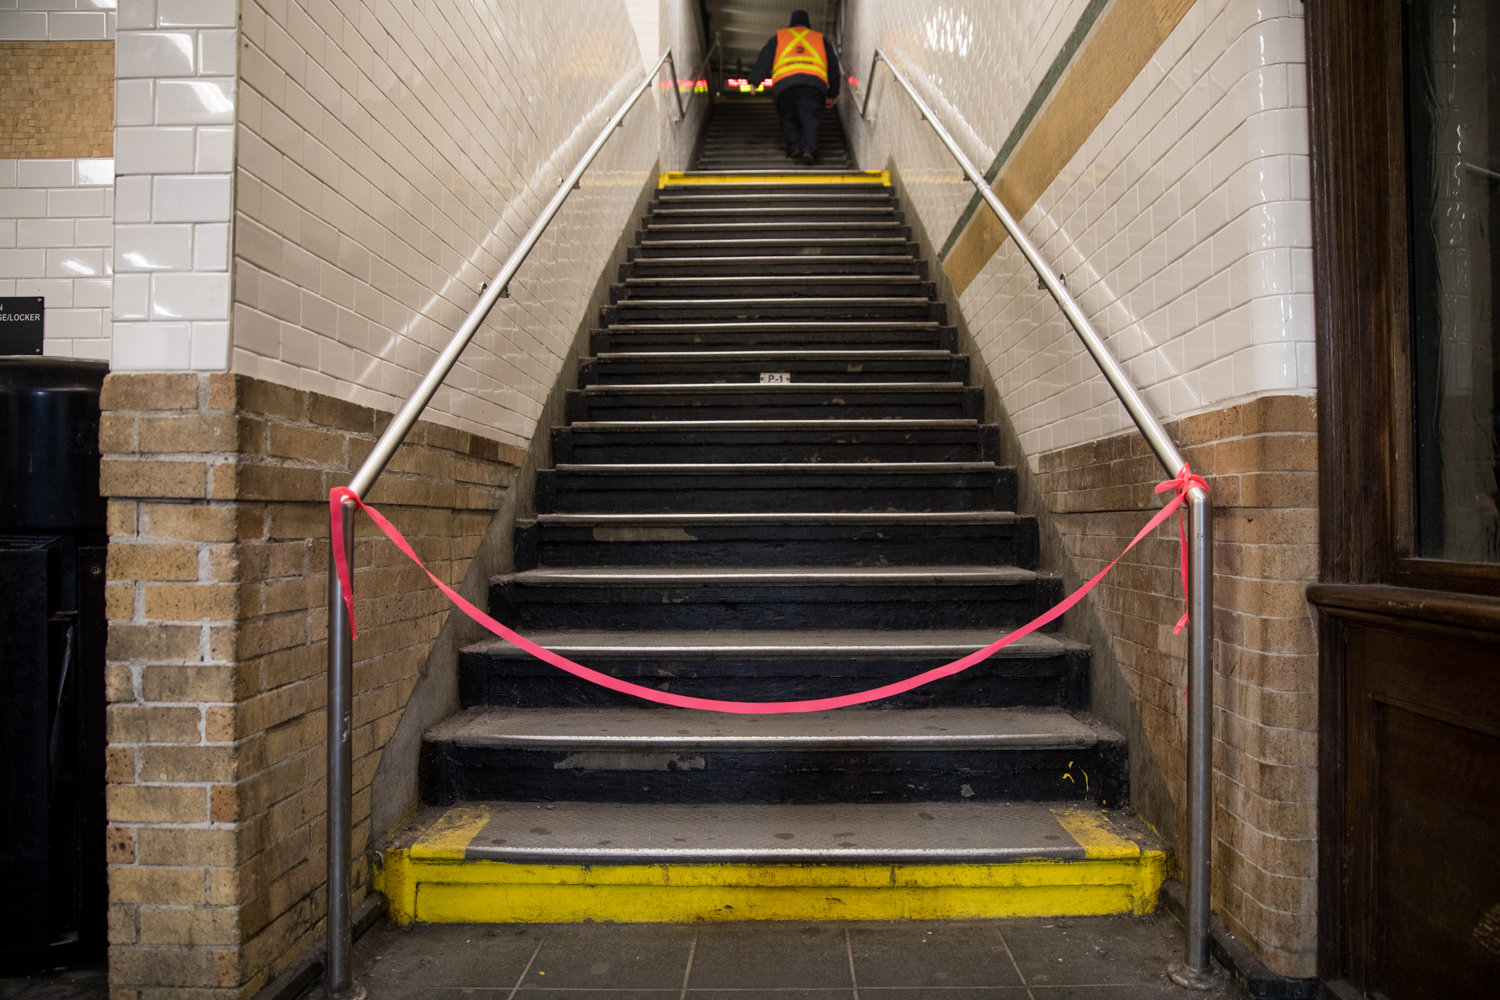 Red tape blocks entry to the stairs leading up to the downtown 1 train platform at the Dyckman Street station, where service is cut off between there and the 137th Street station.